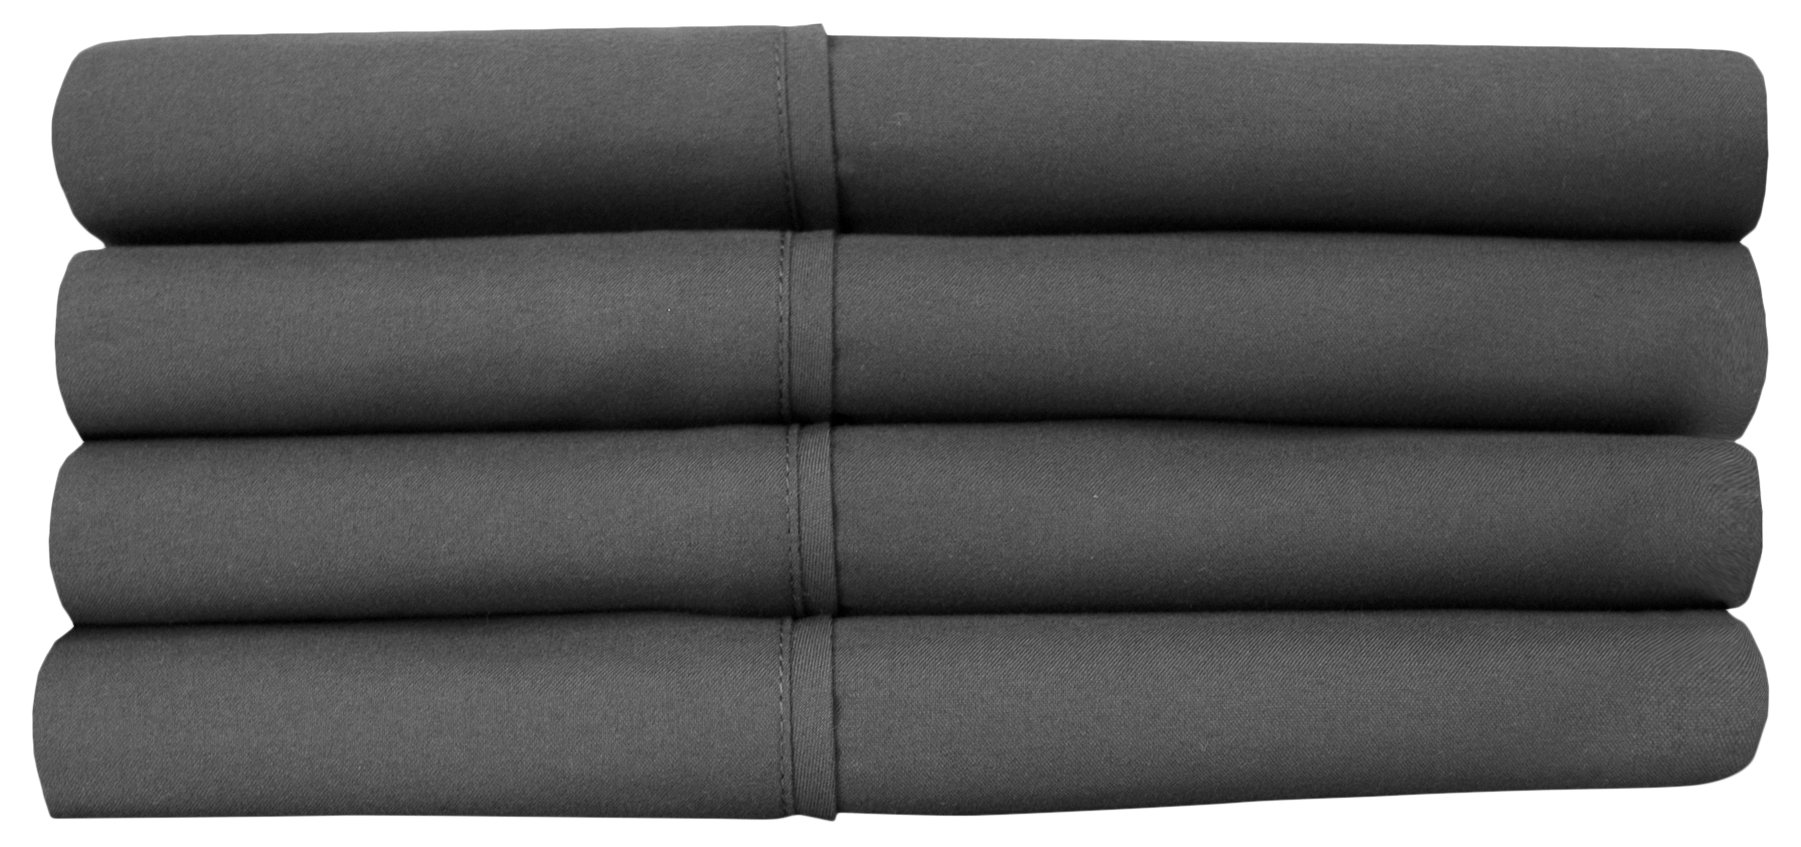 Sweet Home Collection Quality Deep Pocket Bed Sheet Set-2 Extra Pillow Cases, Great Value, Twin X-Large, Gray, 4 Piece